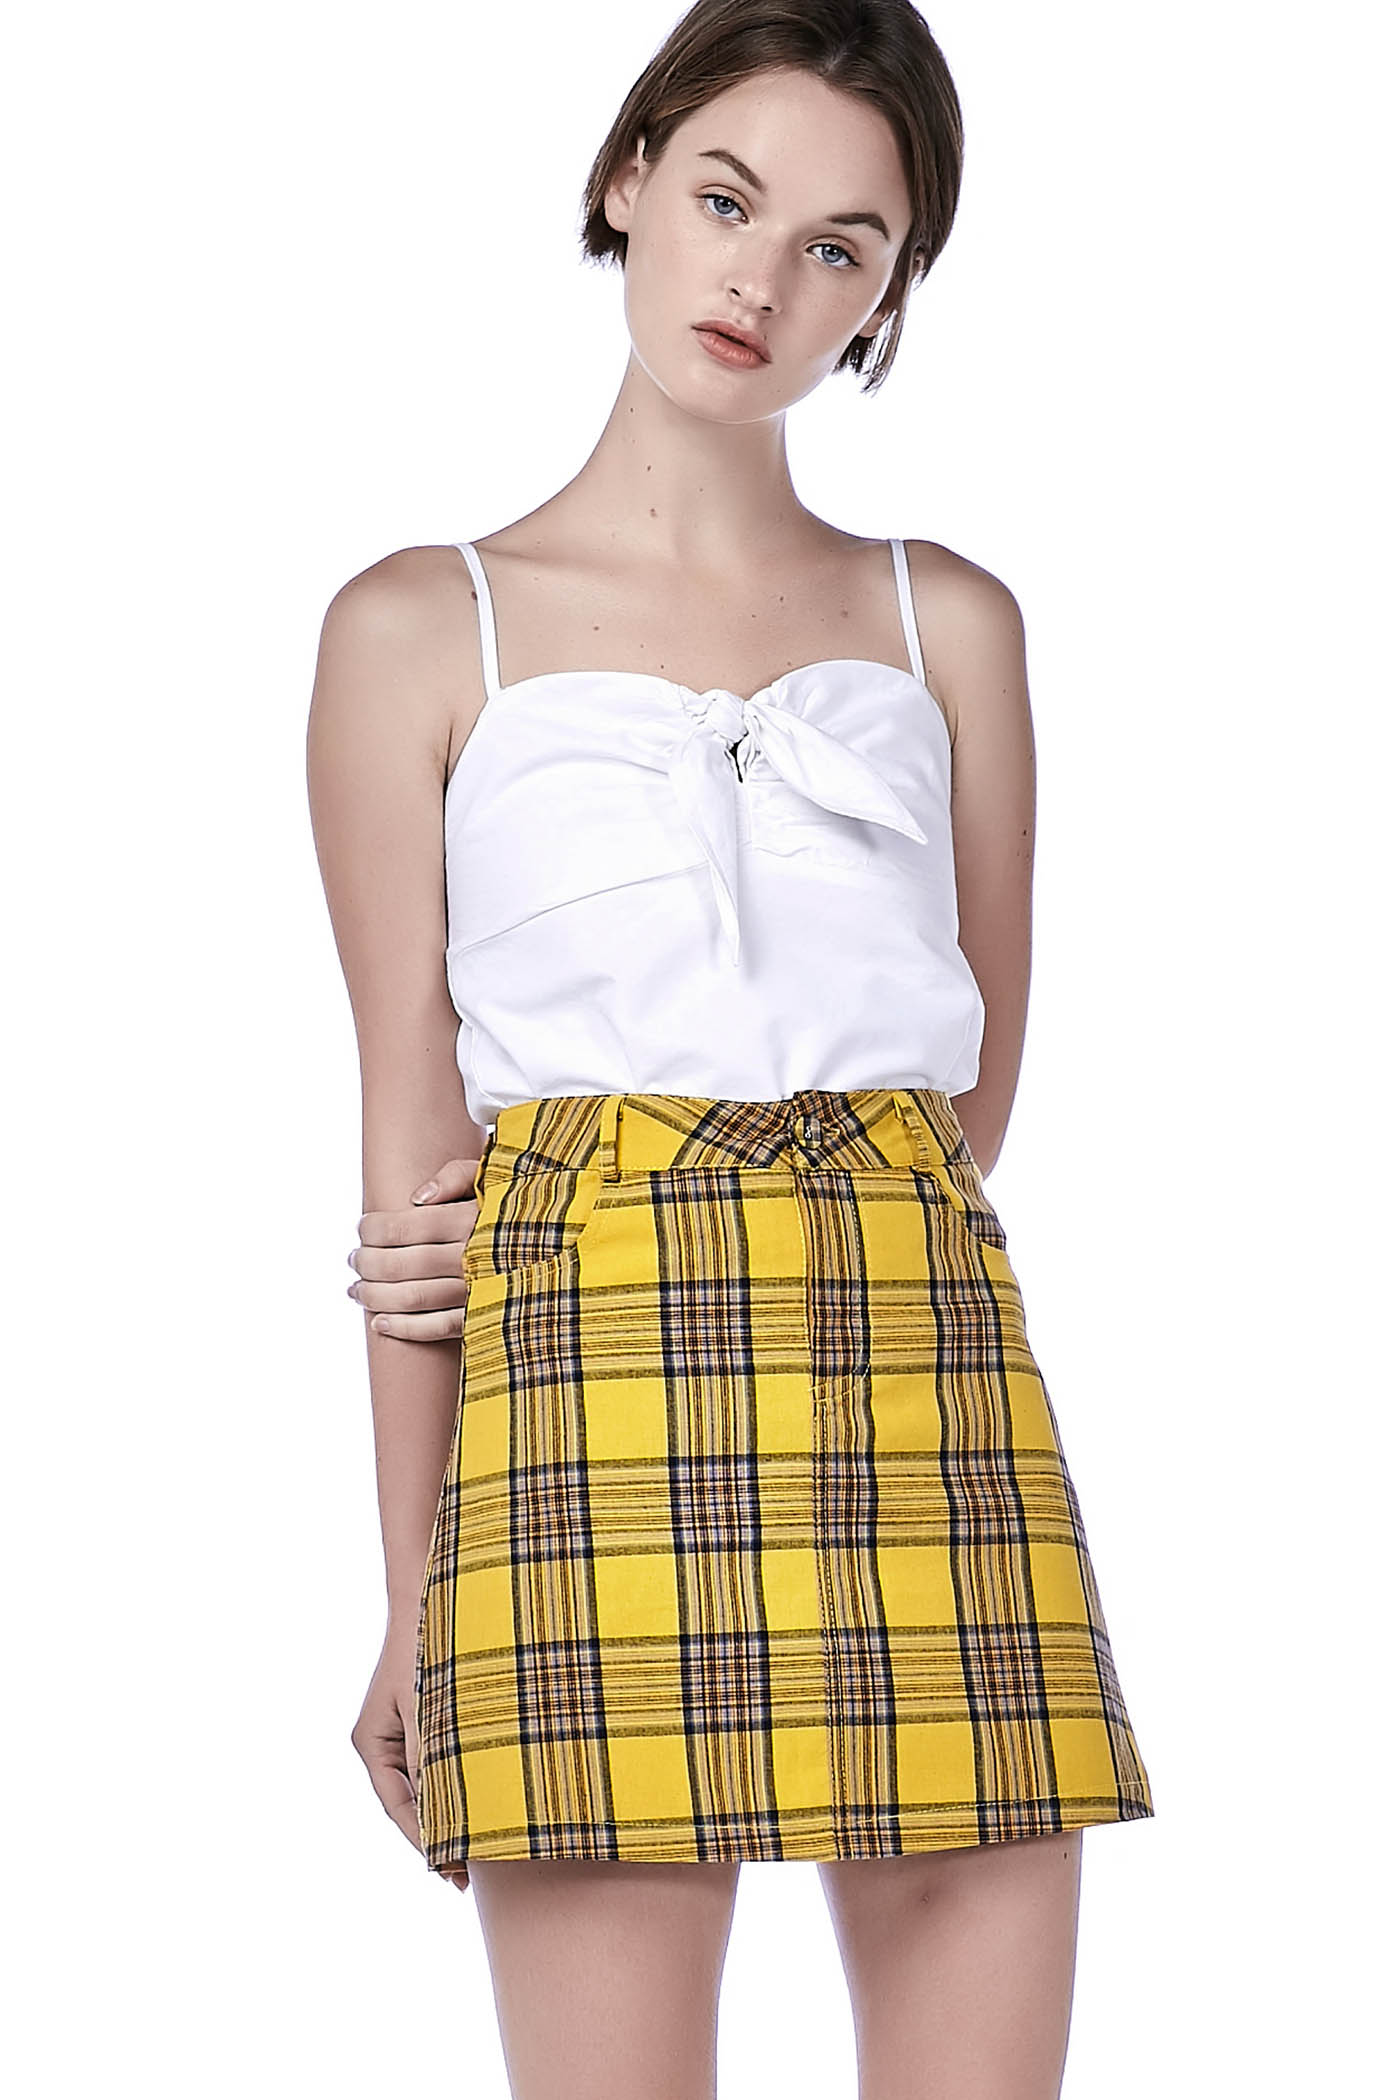 038ddbee6e058a Meara Front-Tie Crop Top | The Editor's Market